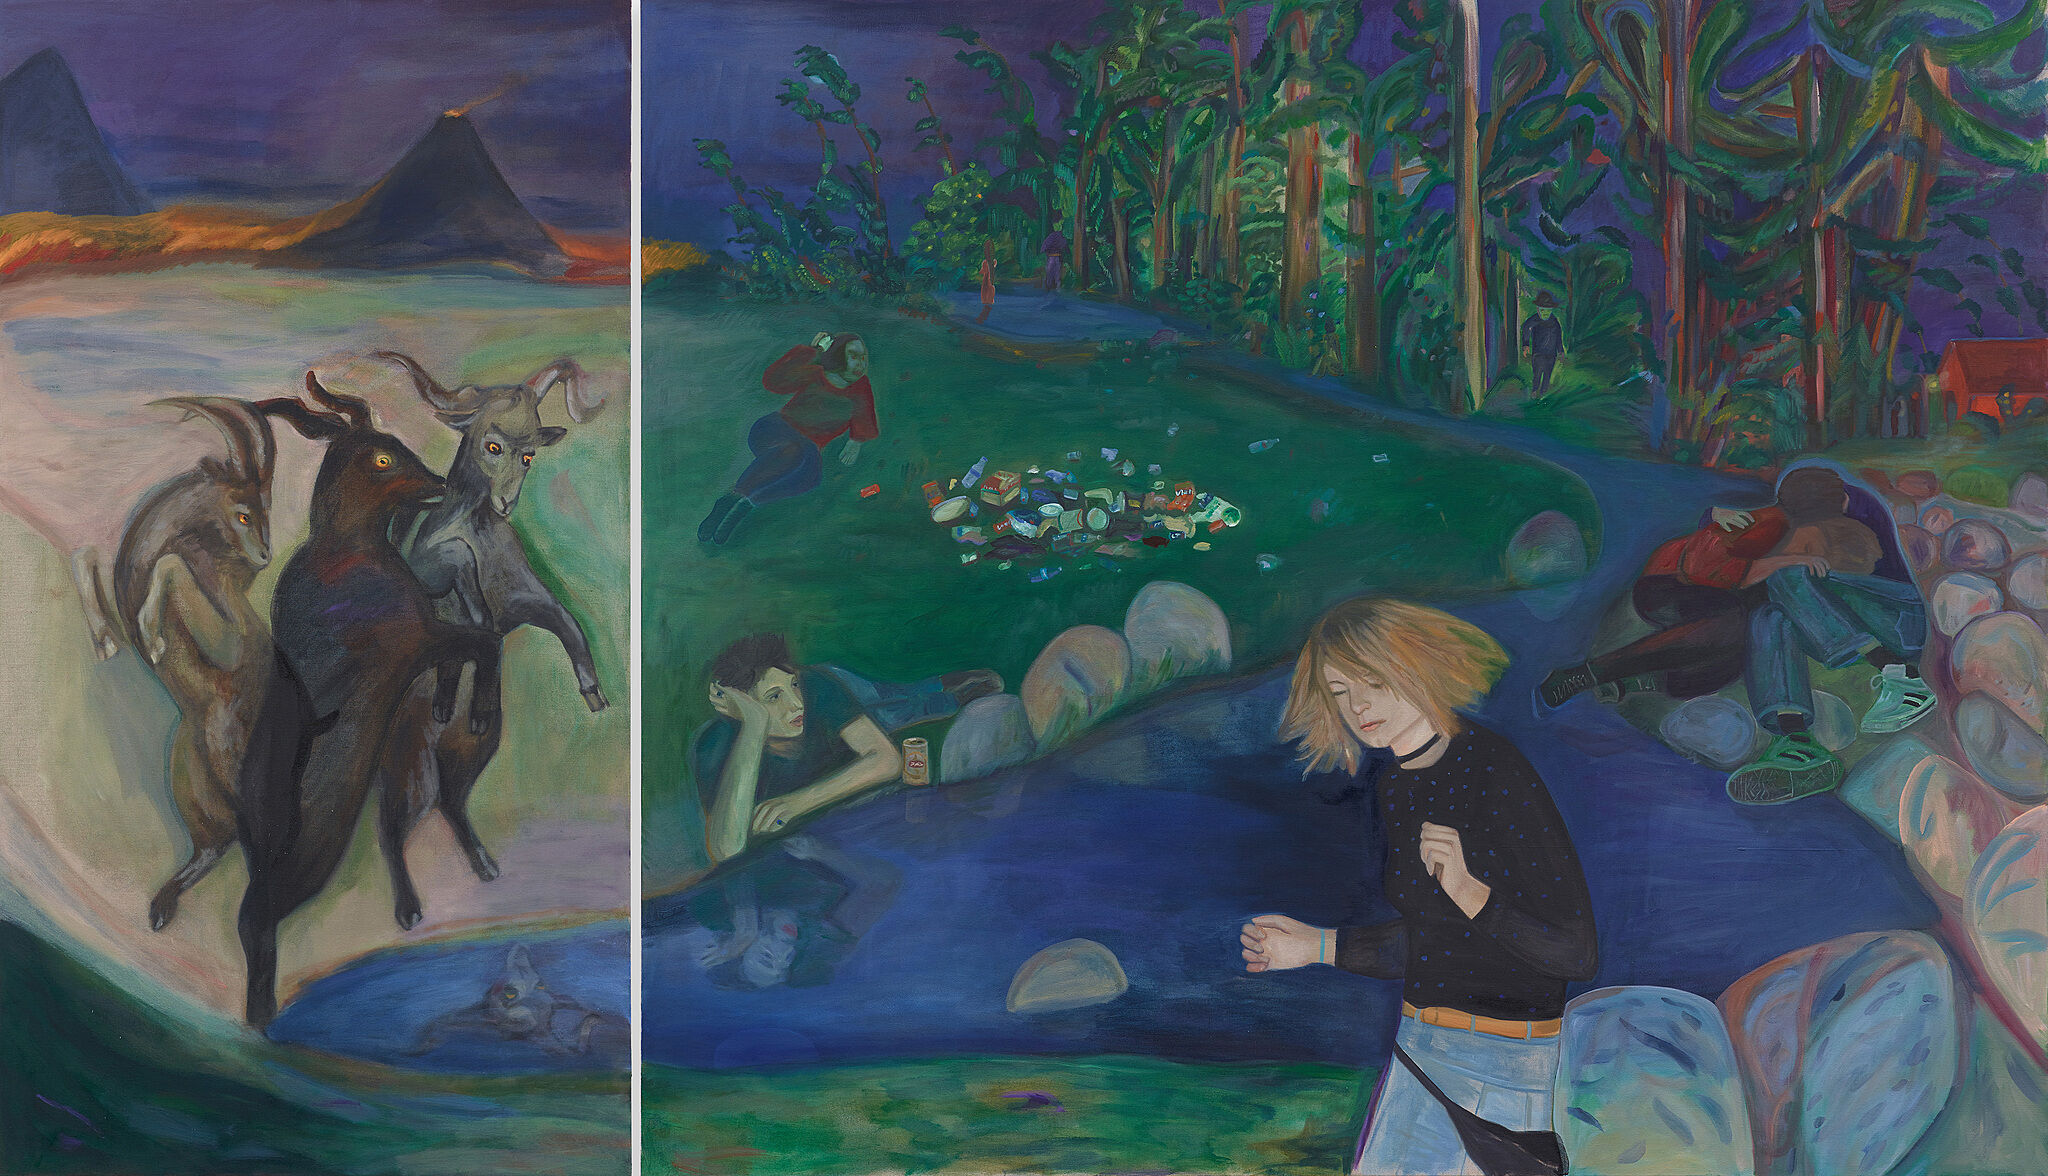 A two-panel painting. On the left side, three goat-like animals stand on their hind legs in a mountainous landscape. On the right panel, a series of lone figures and a couple inhabit a space with trees, rocks, and trash.